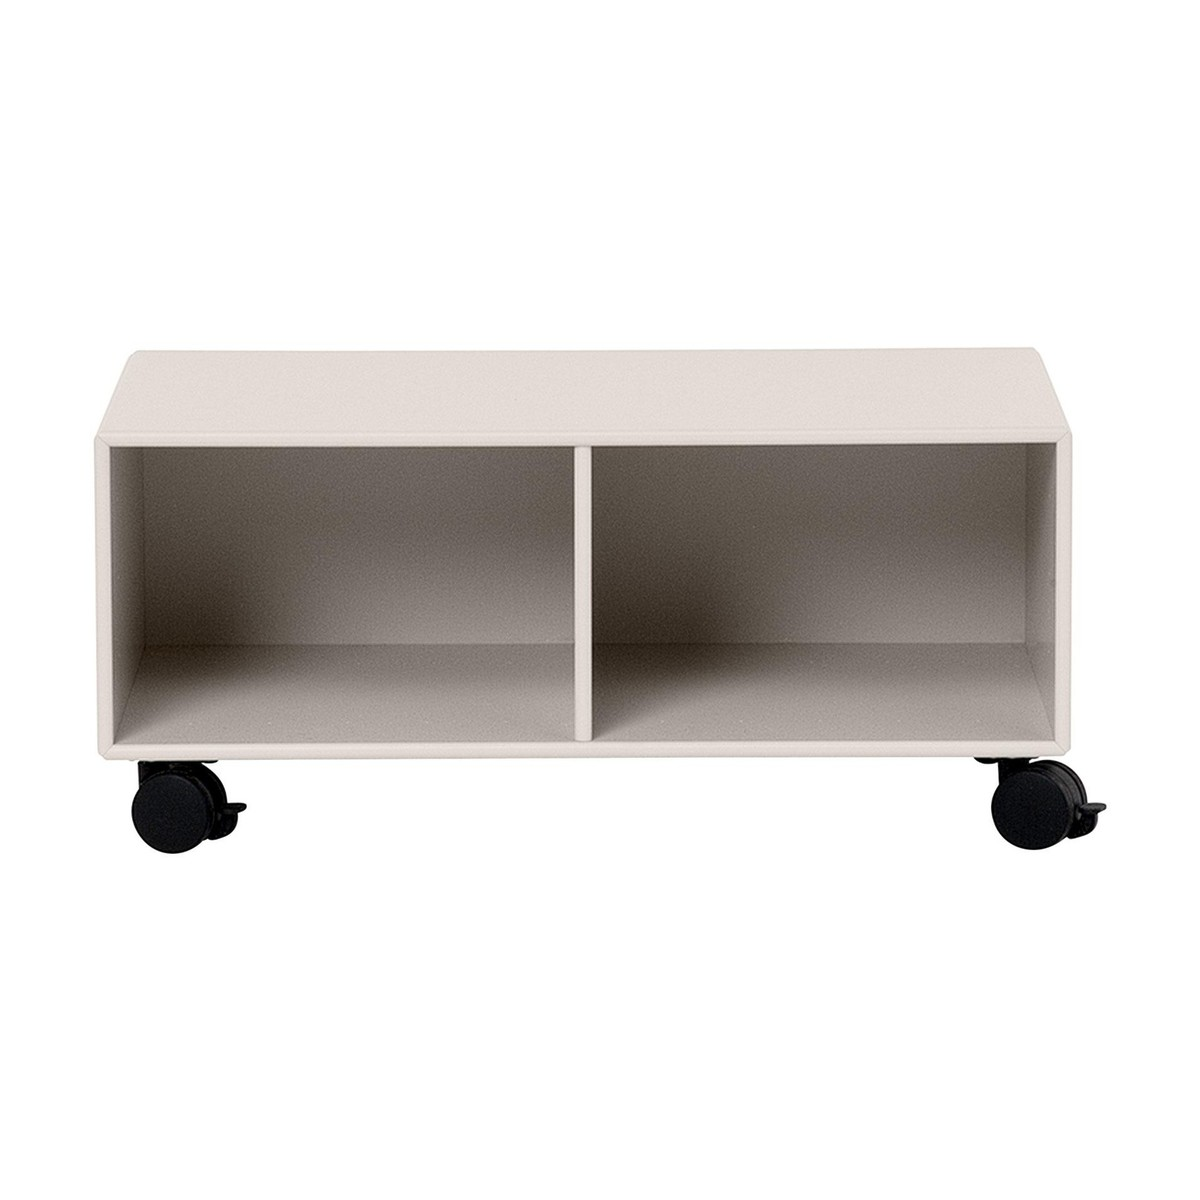 skate sideboard mit rollen h 31cm montana. Black Bedroom Furniture Sets. Home Design Ideas